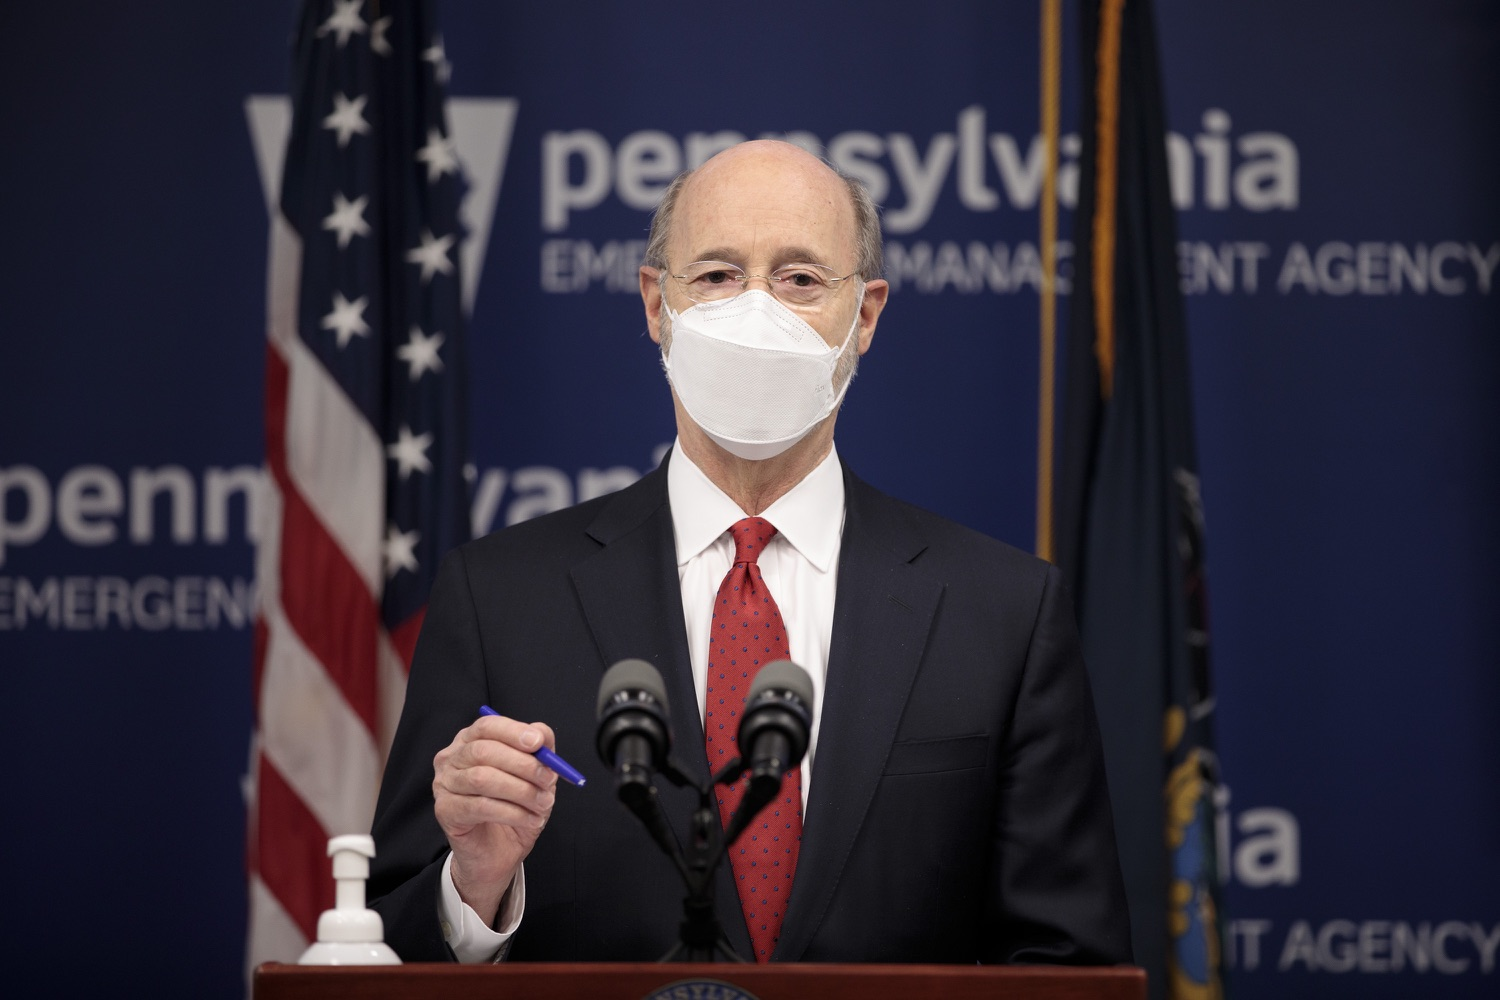 "<a href=""https://filesource.wostreaming.net/commonwealthofpa/photo/18540_gov_backtowork_dz_09.jpg"" target=""_blank"">⇣ Download Photo<br></a>Pennsylvania Governor Tom Wolf speaking at the press conference. The COVID-19 global pandemic has significantly affected Pennsylvania workers, businesses and communities. To bolster economic recovery efforts and position Pennsylvania for economic growth, Governor Tom Wolf today unveiled his Back to Work PA plan.   Harrisburg, PA  February 22, 2021"